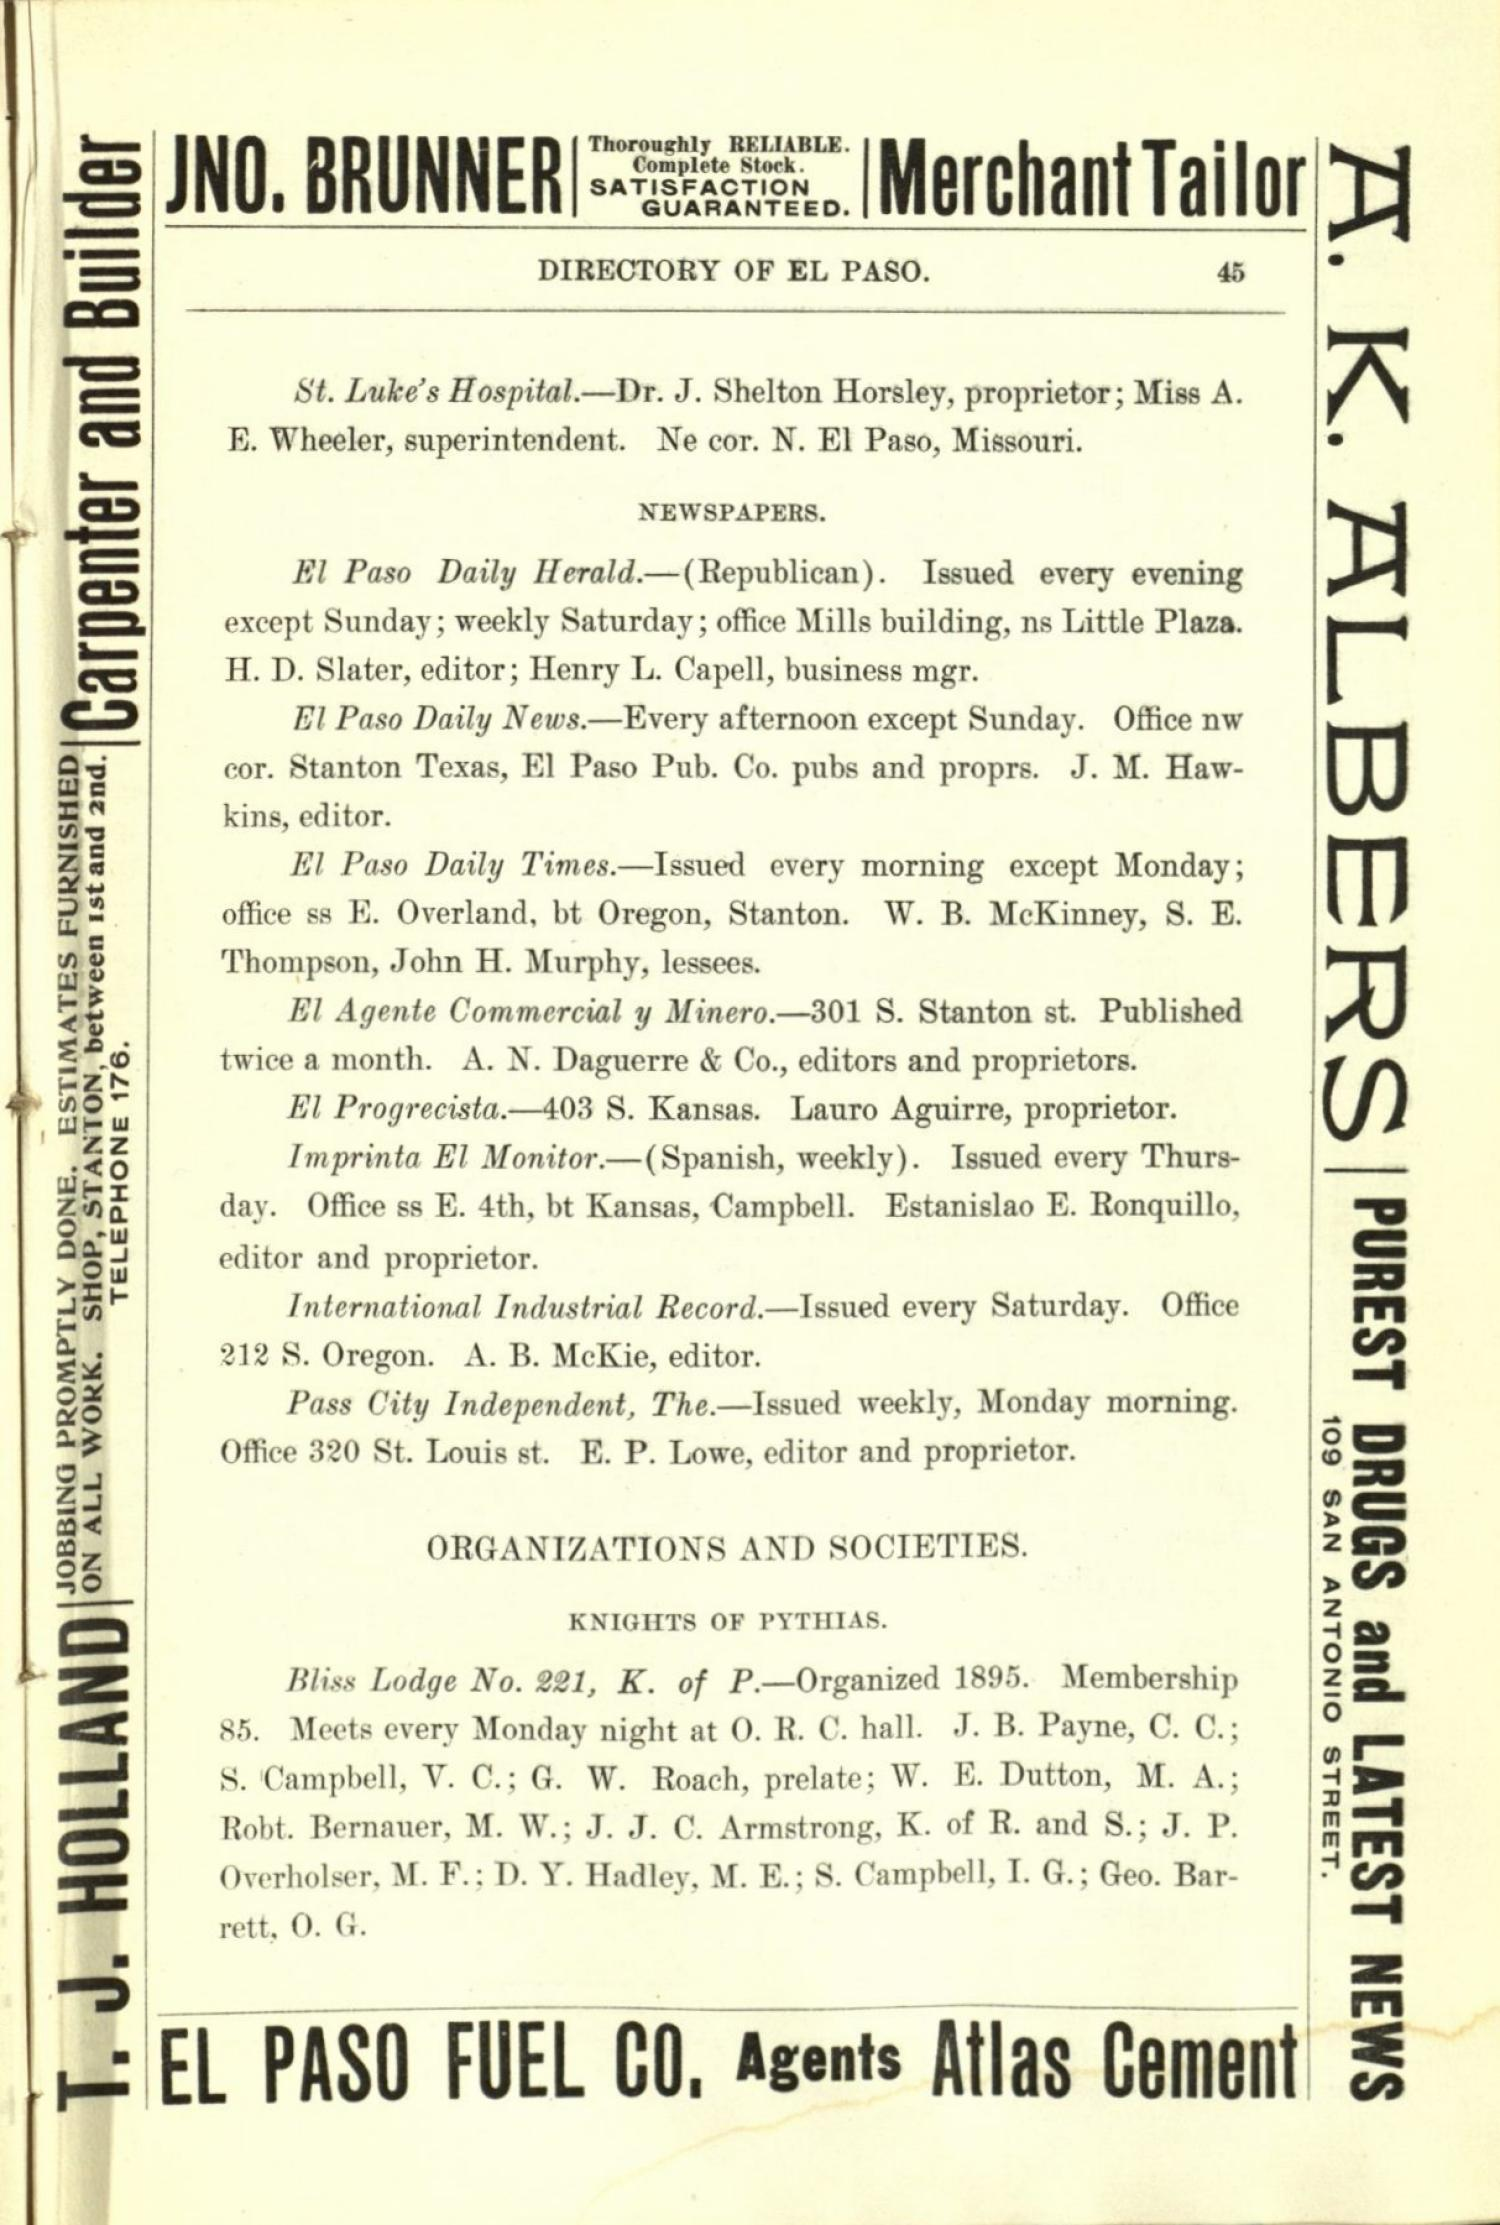 Worley's Directory of the City of El Paso, Texas 1901                                                                                                      45